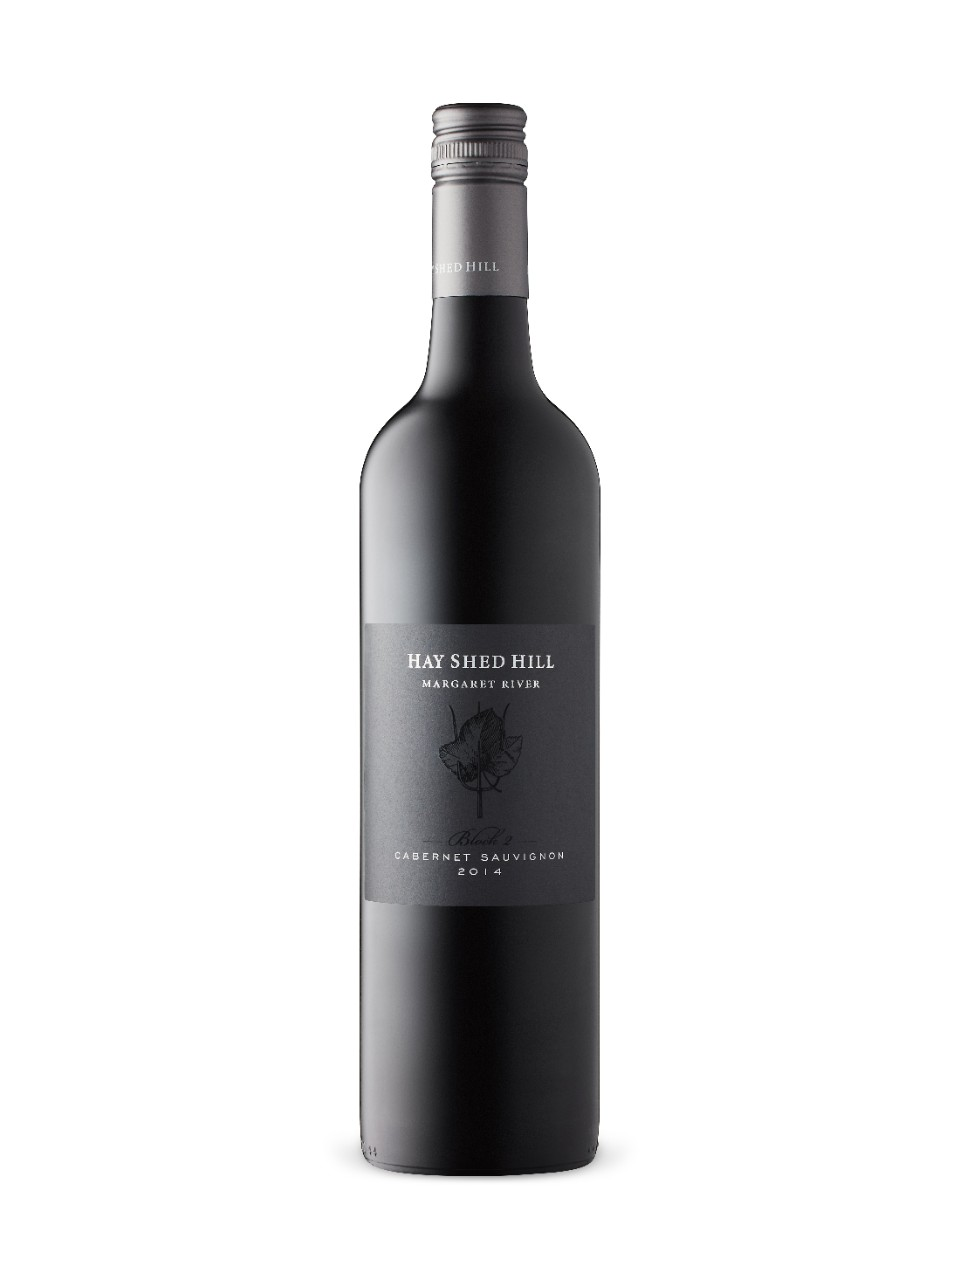 Hay Shed Hill Cabernet Sauvignon 2014 from LCBO